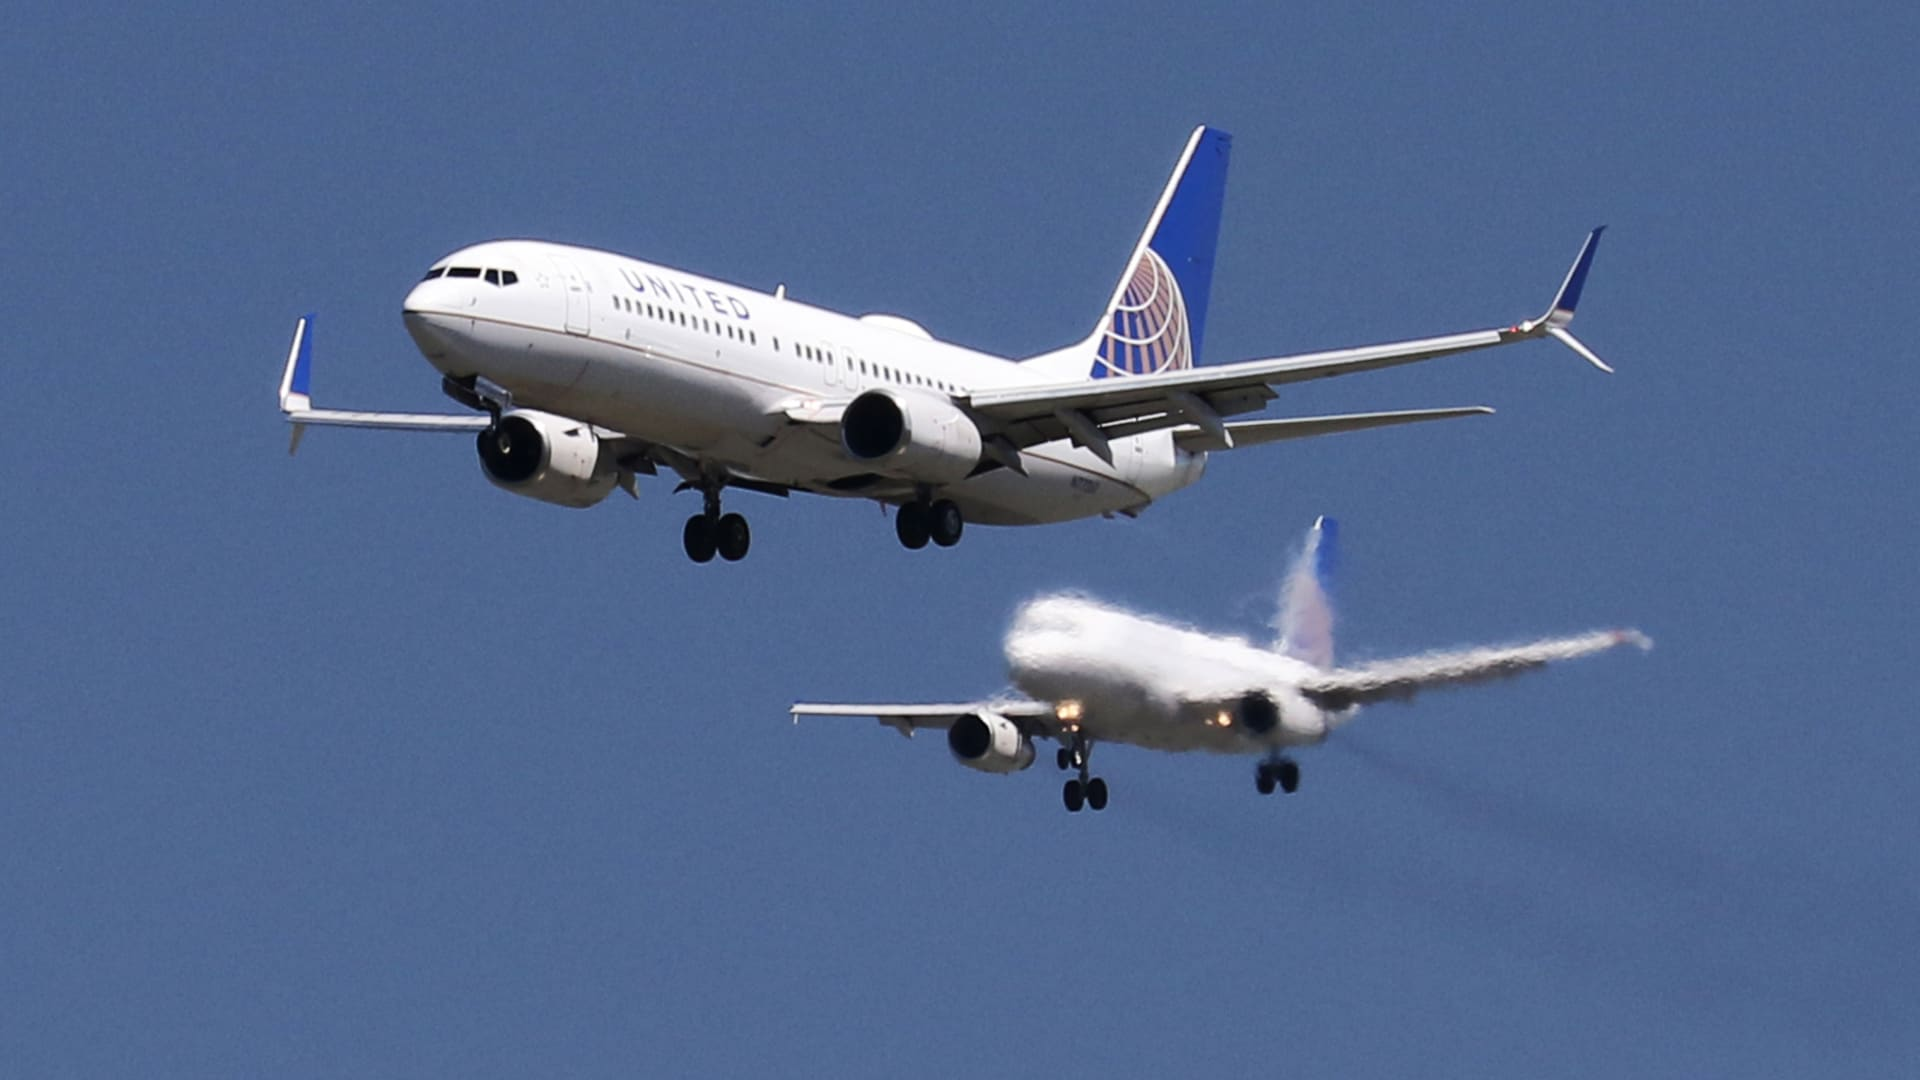 A United Airlines Boeing 737-800 and United Airlines A320 Airbus on seen approach to San Francisco International Airport, San Francisco.